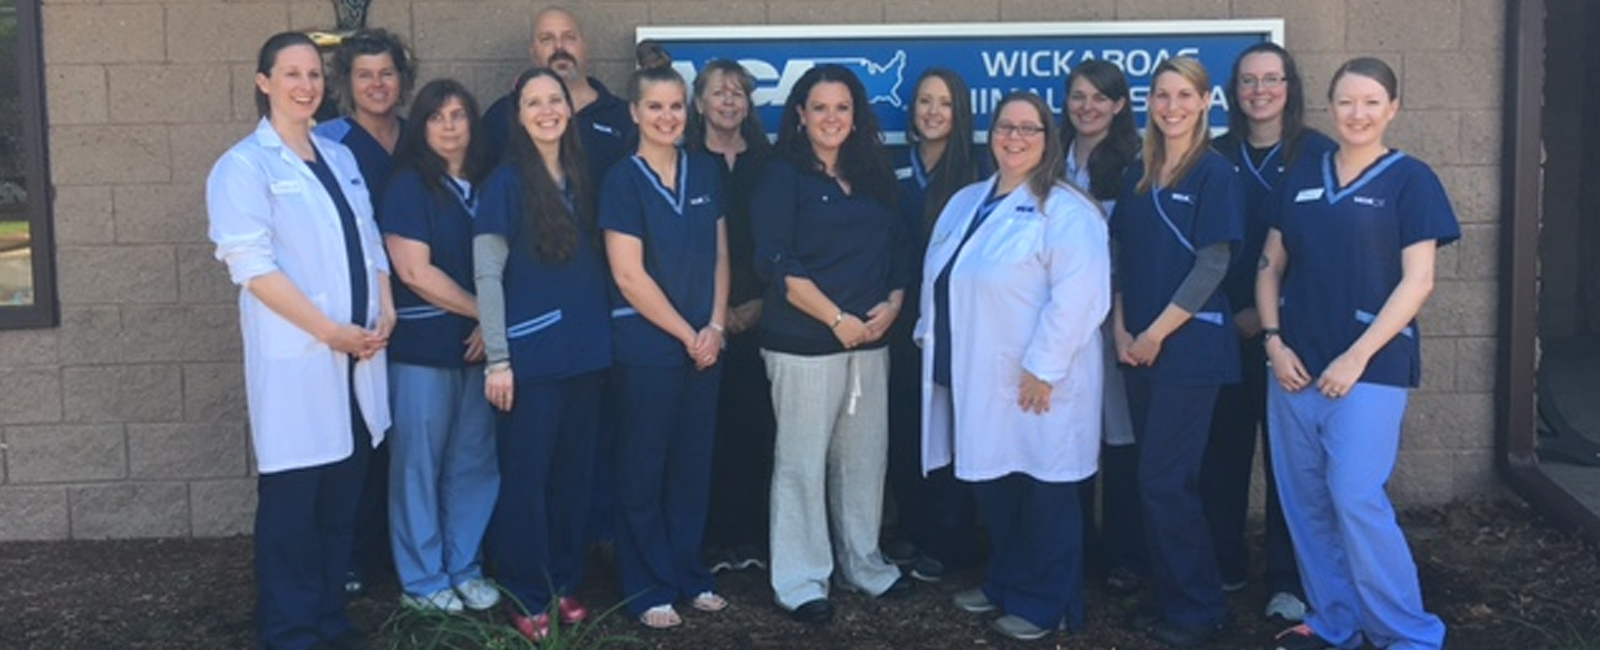 Team Picture of VCA Wickaboag Animal Hospital